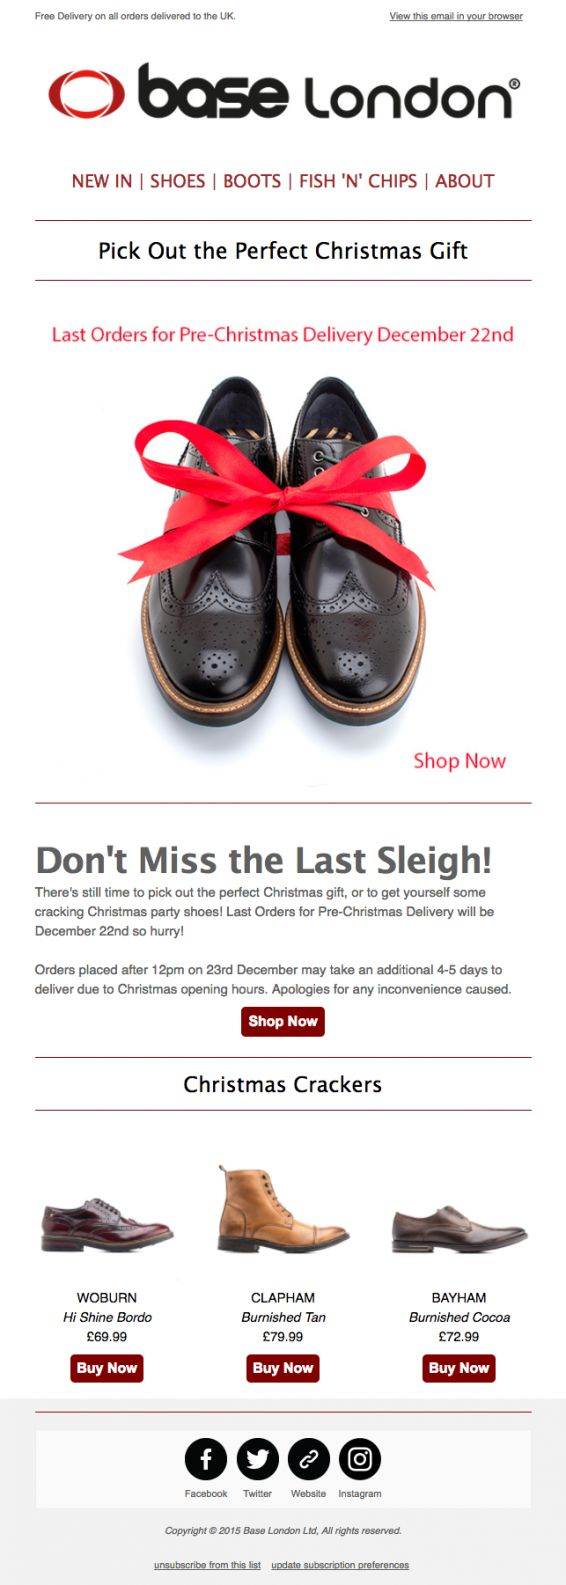 The best holiday email marketing: Content | Emma Email Marketing Blog | Emma Email Marketing